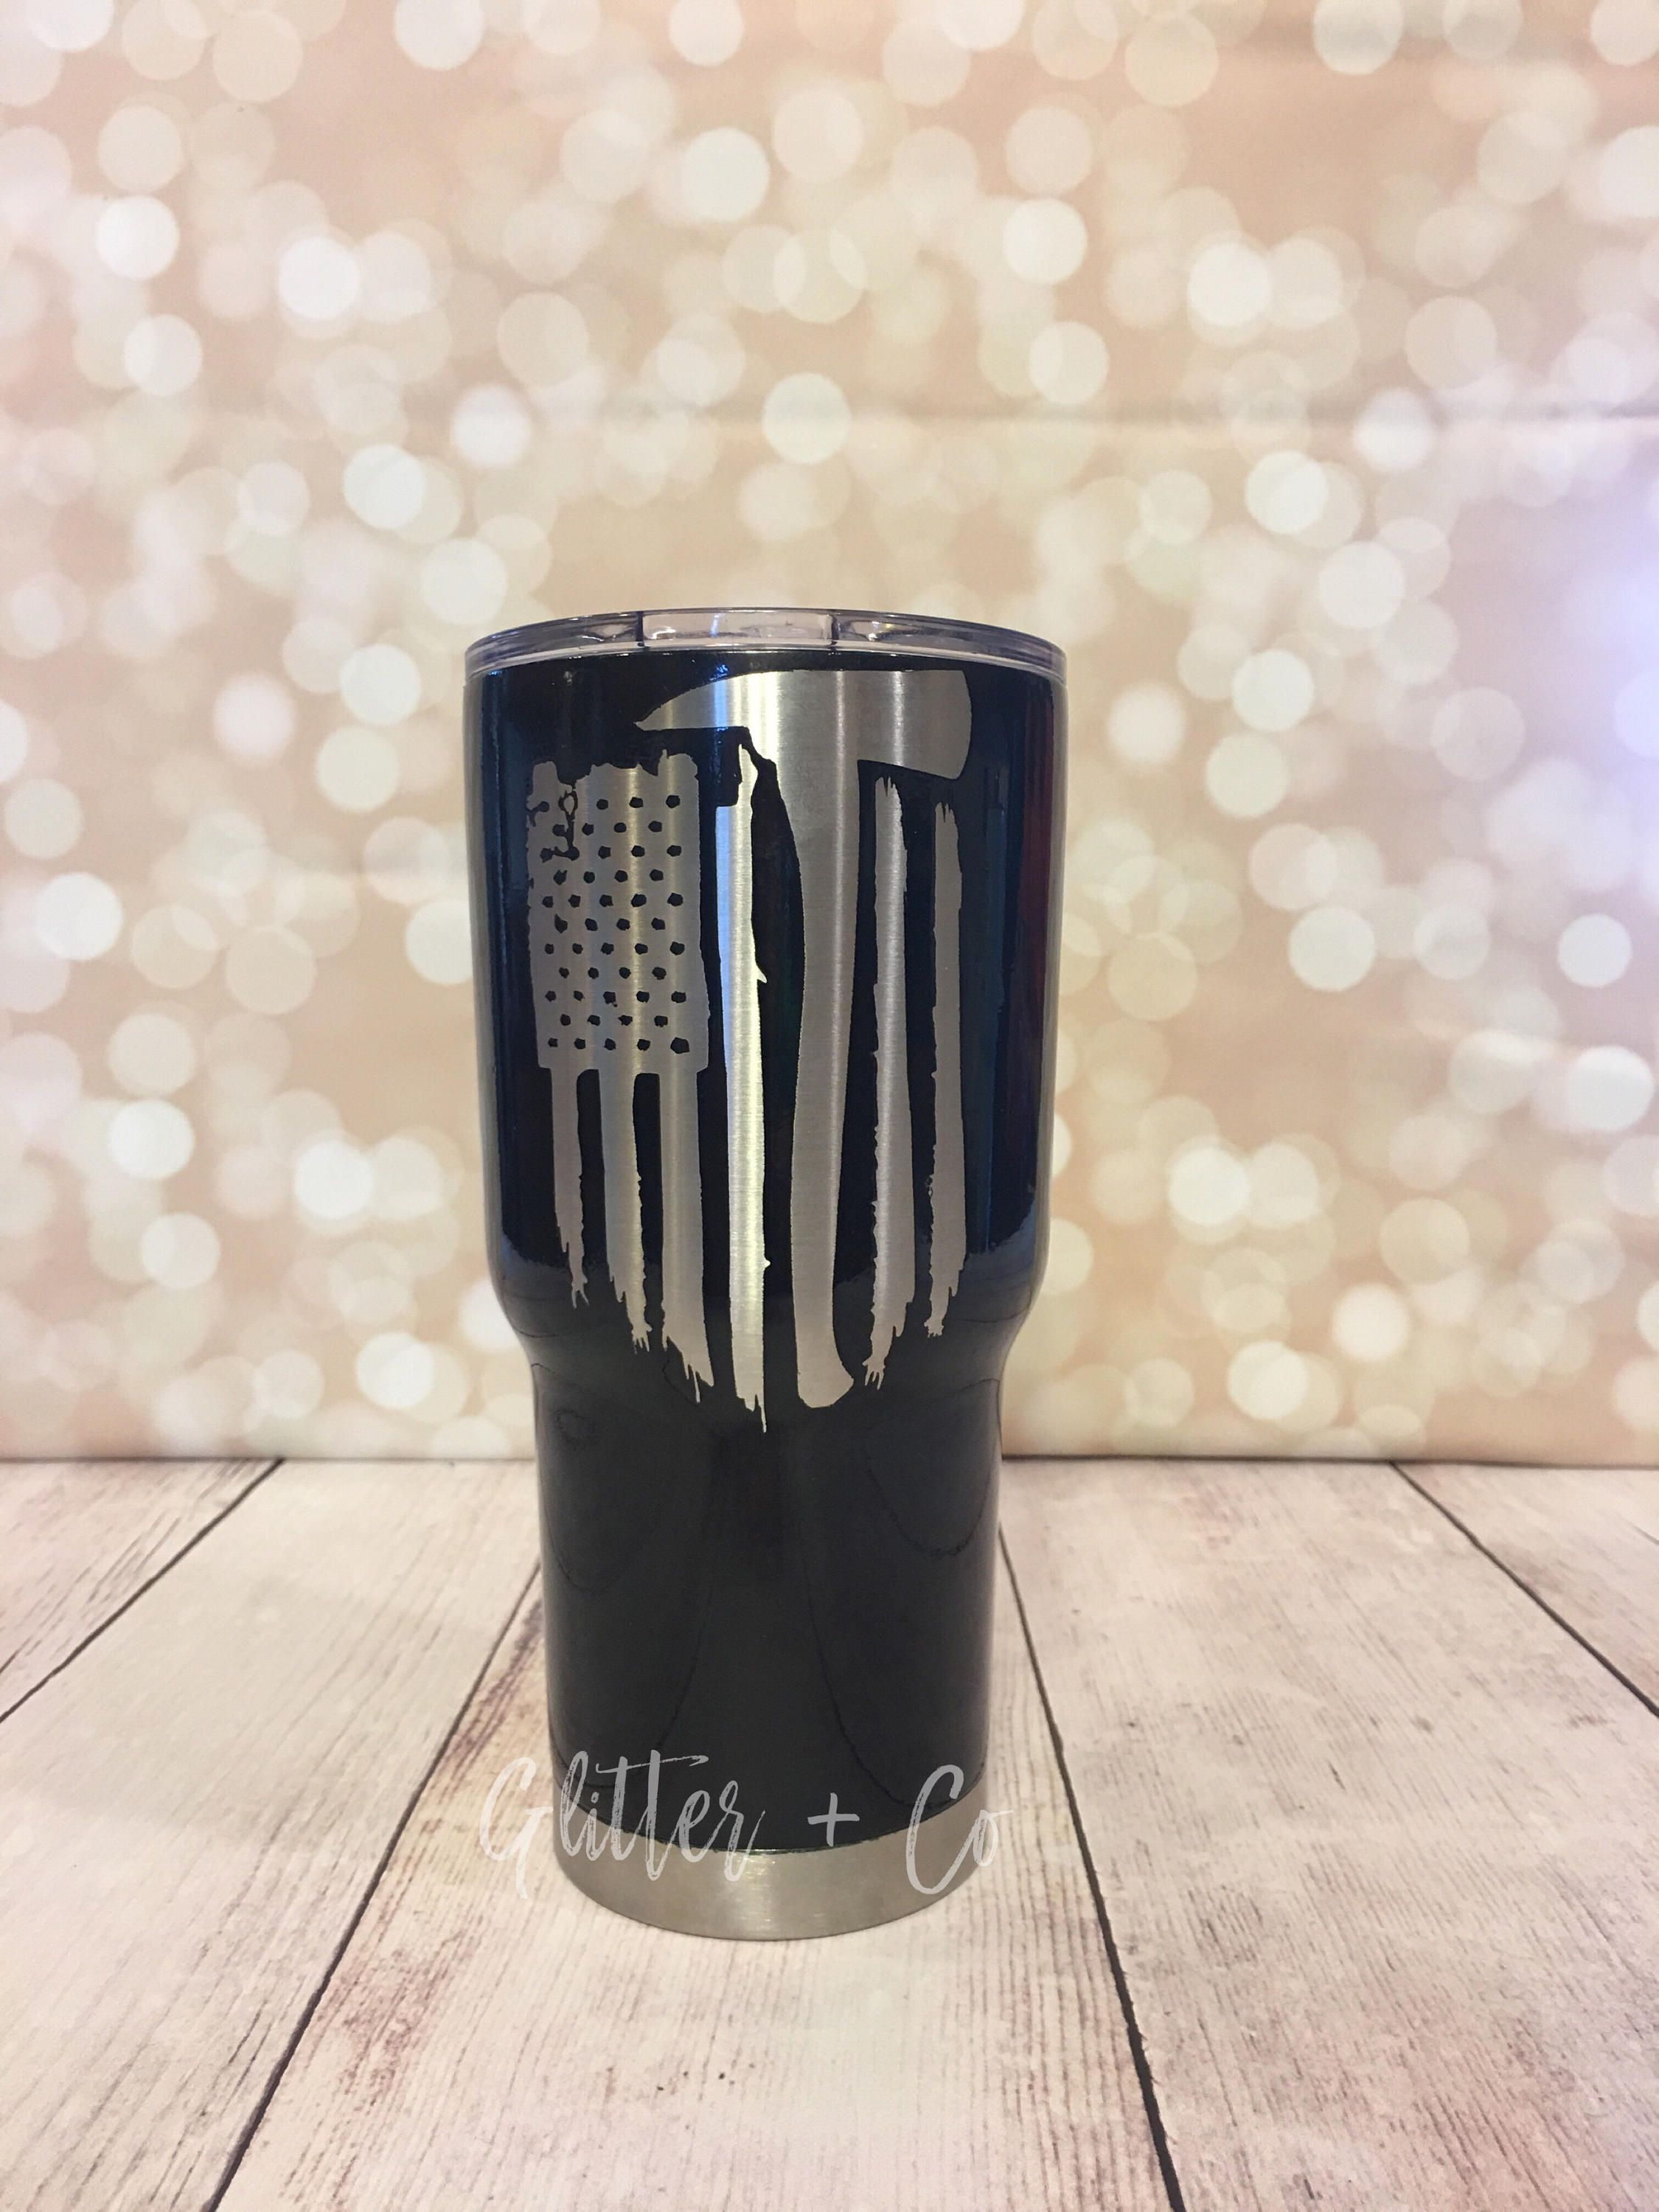 eaae27a963b American Flag Firefighter Ax Powder Coated Yeti-Style Tumbler   Firefighter  Ax   Custom Yeti-Style Tumbler   Personalized Cup   HOGG by  GlitterandCoGifts on ...